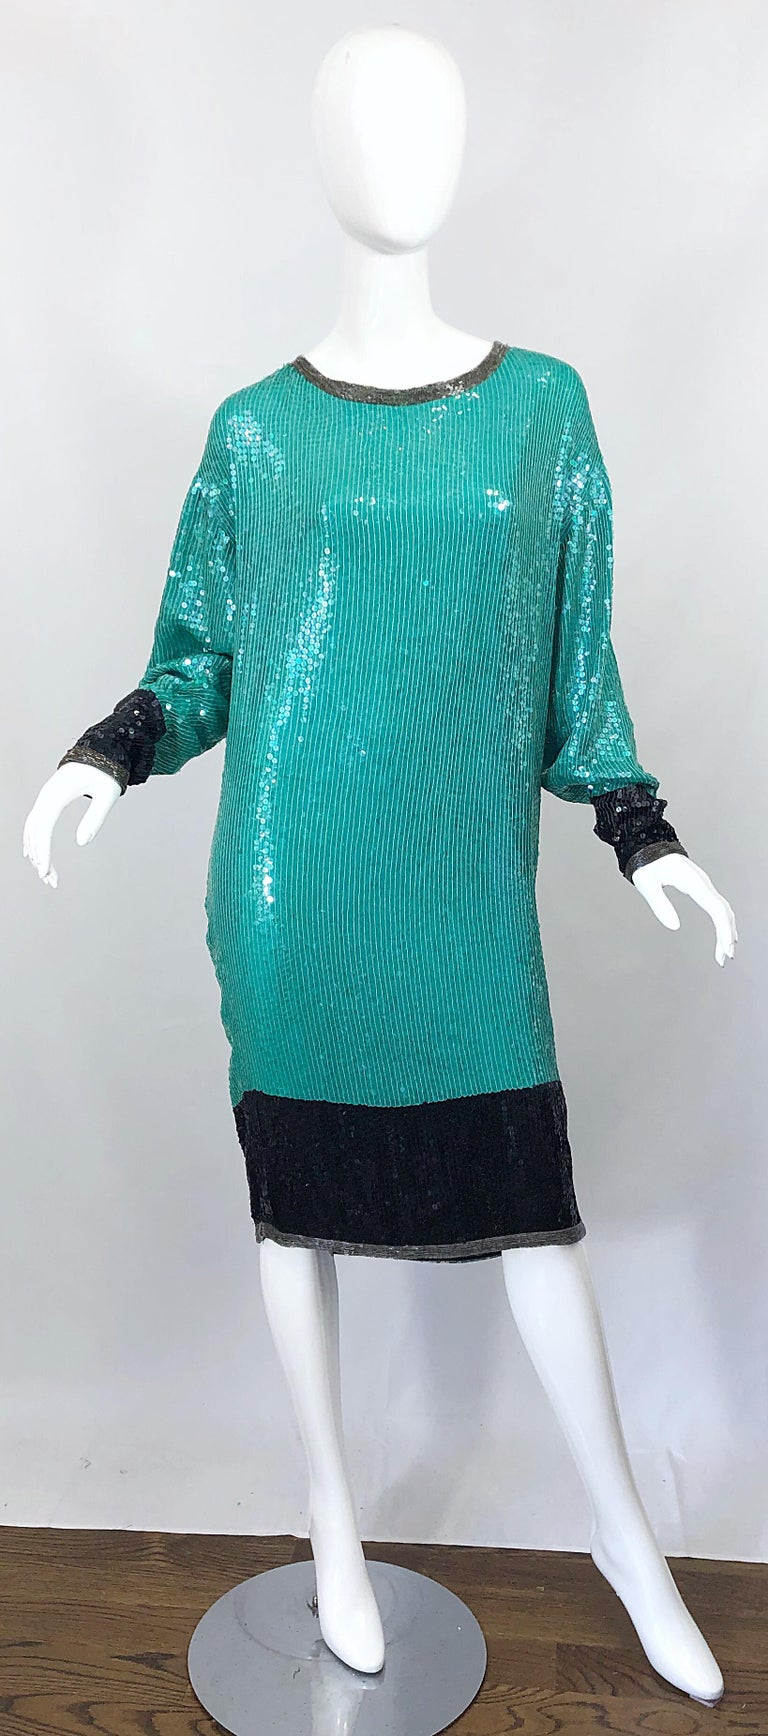 Amazing vintage late 70s HALSTON teal blue/green and black silk sequined and beaded dolman sleeve dress! Features multiple layers of the finest silk chiffon with thousands of hand-sewn sequins and beads throughout the entire dress. Black sequined